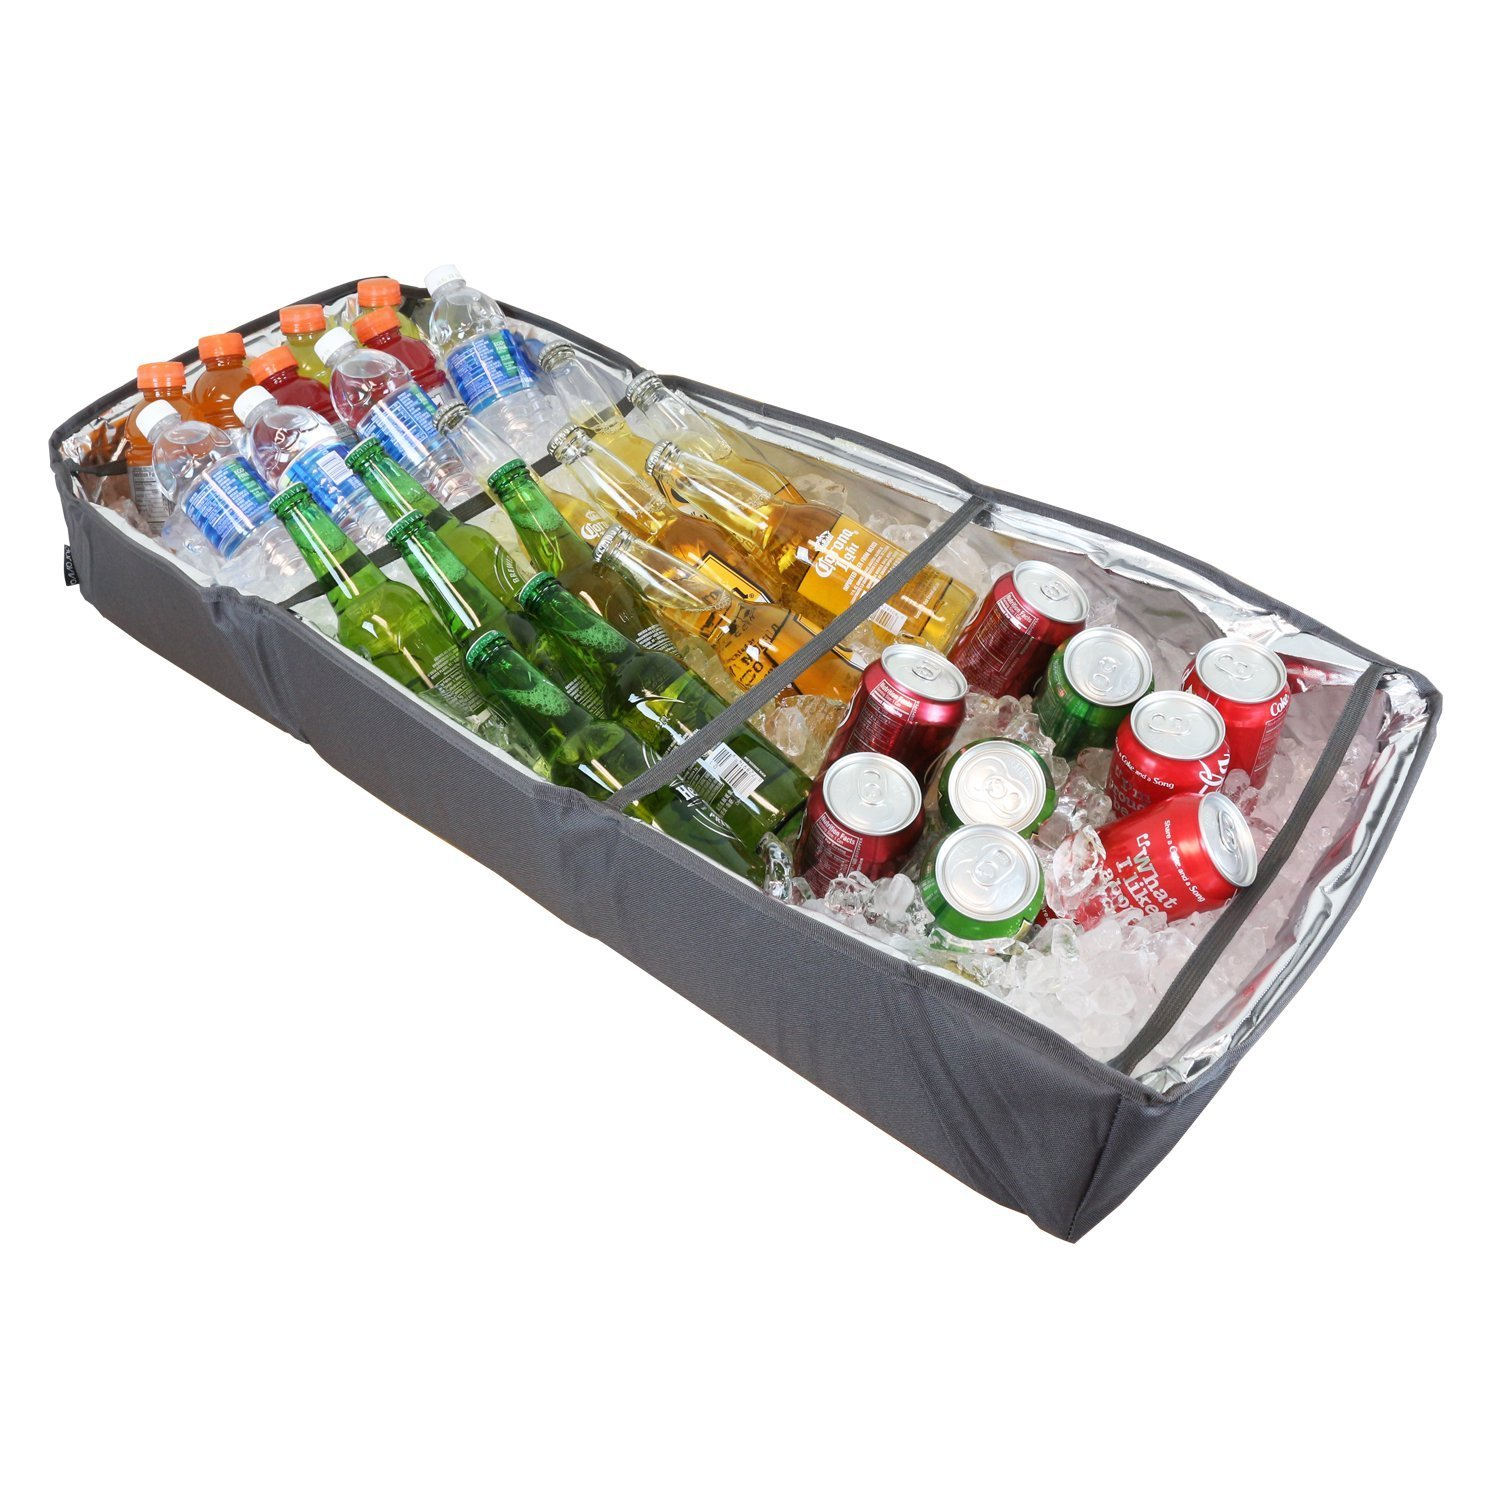 Duraviva Insulated Food & Drink Party Serving Tray Portable Foldable Cooler for Beverages, Buffet, Picnic, BBQ, Salad Seafood Bar by Duraviva